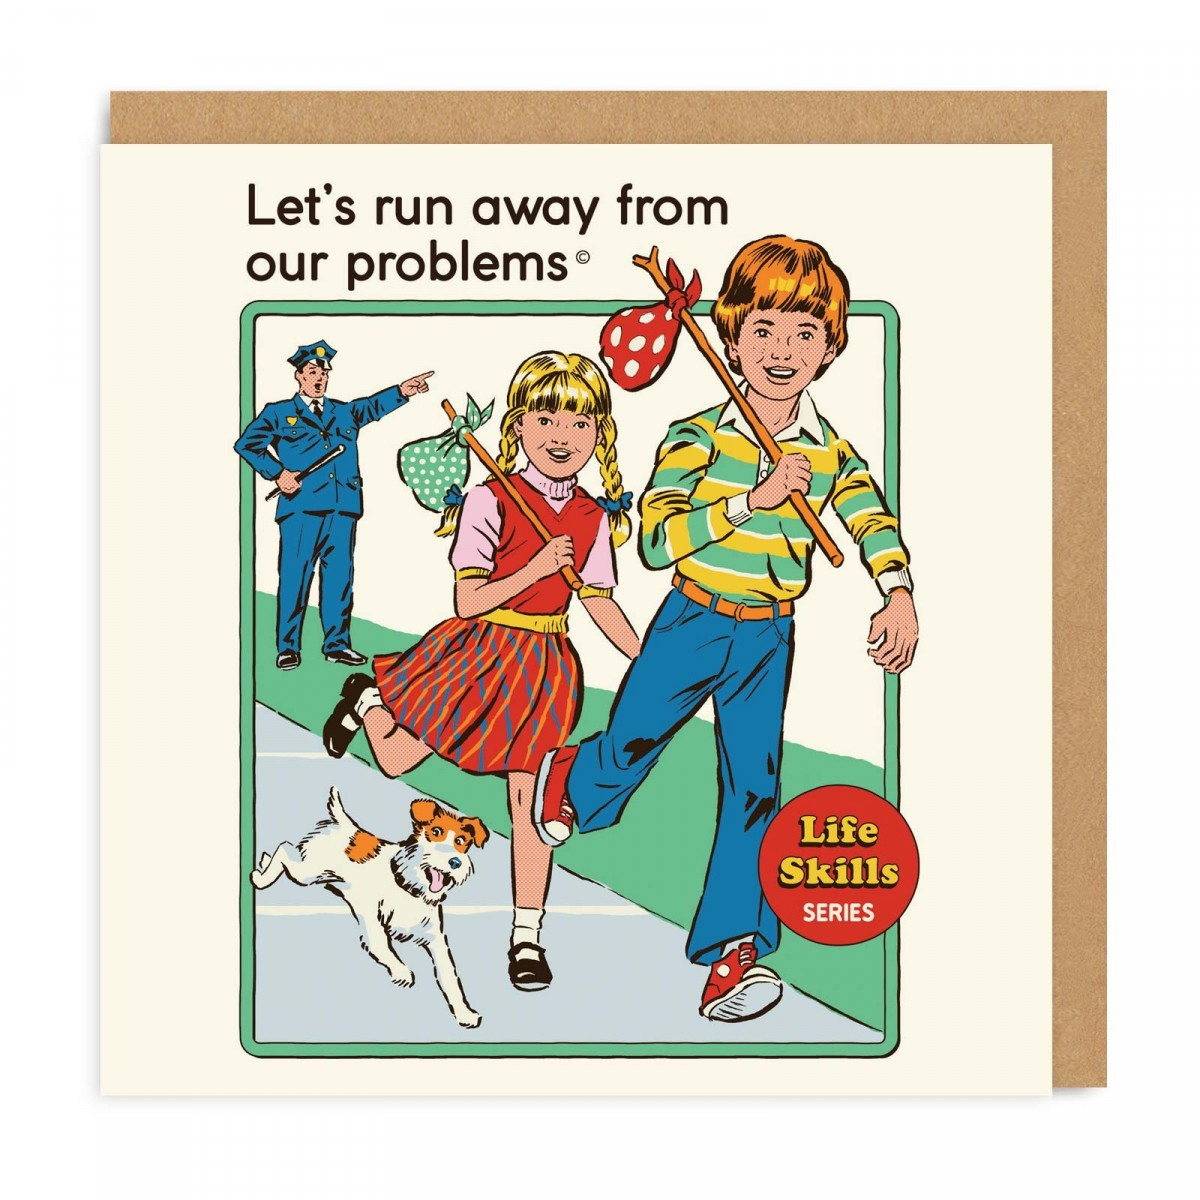 srh-gc-3524_let_s_run_away_from_our_problems.jpg